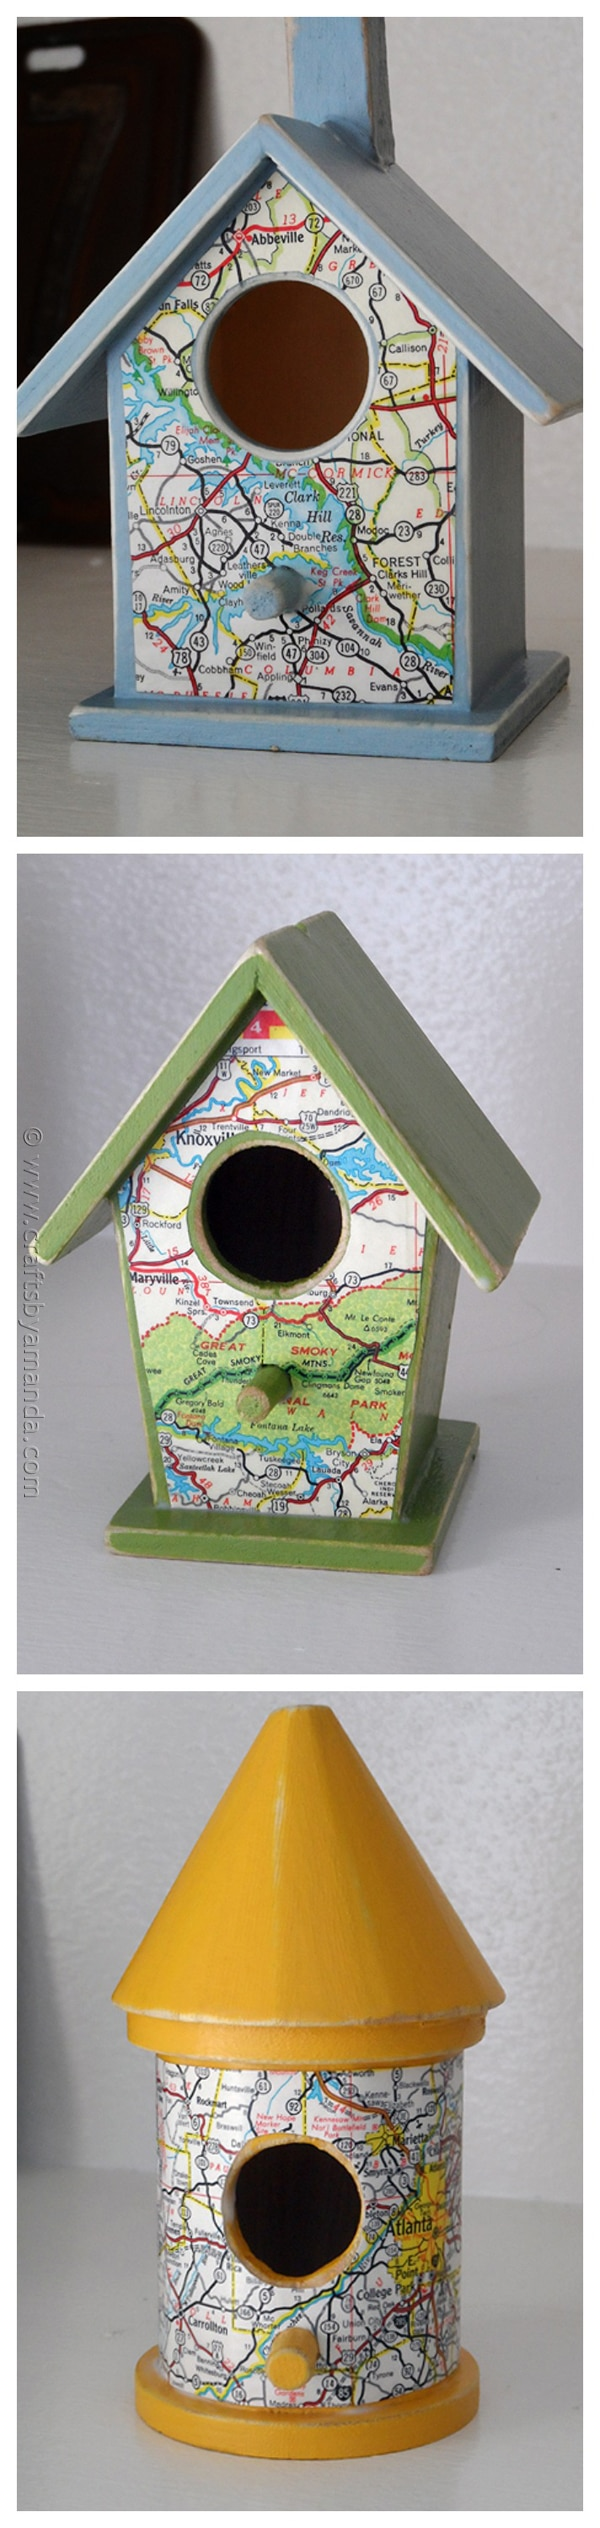 diy-map-crafts_07